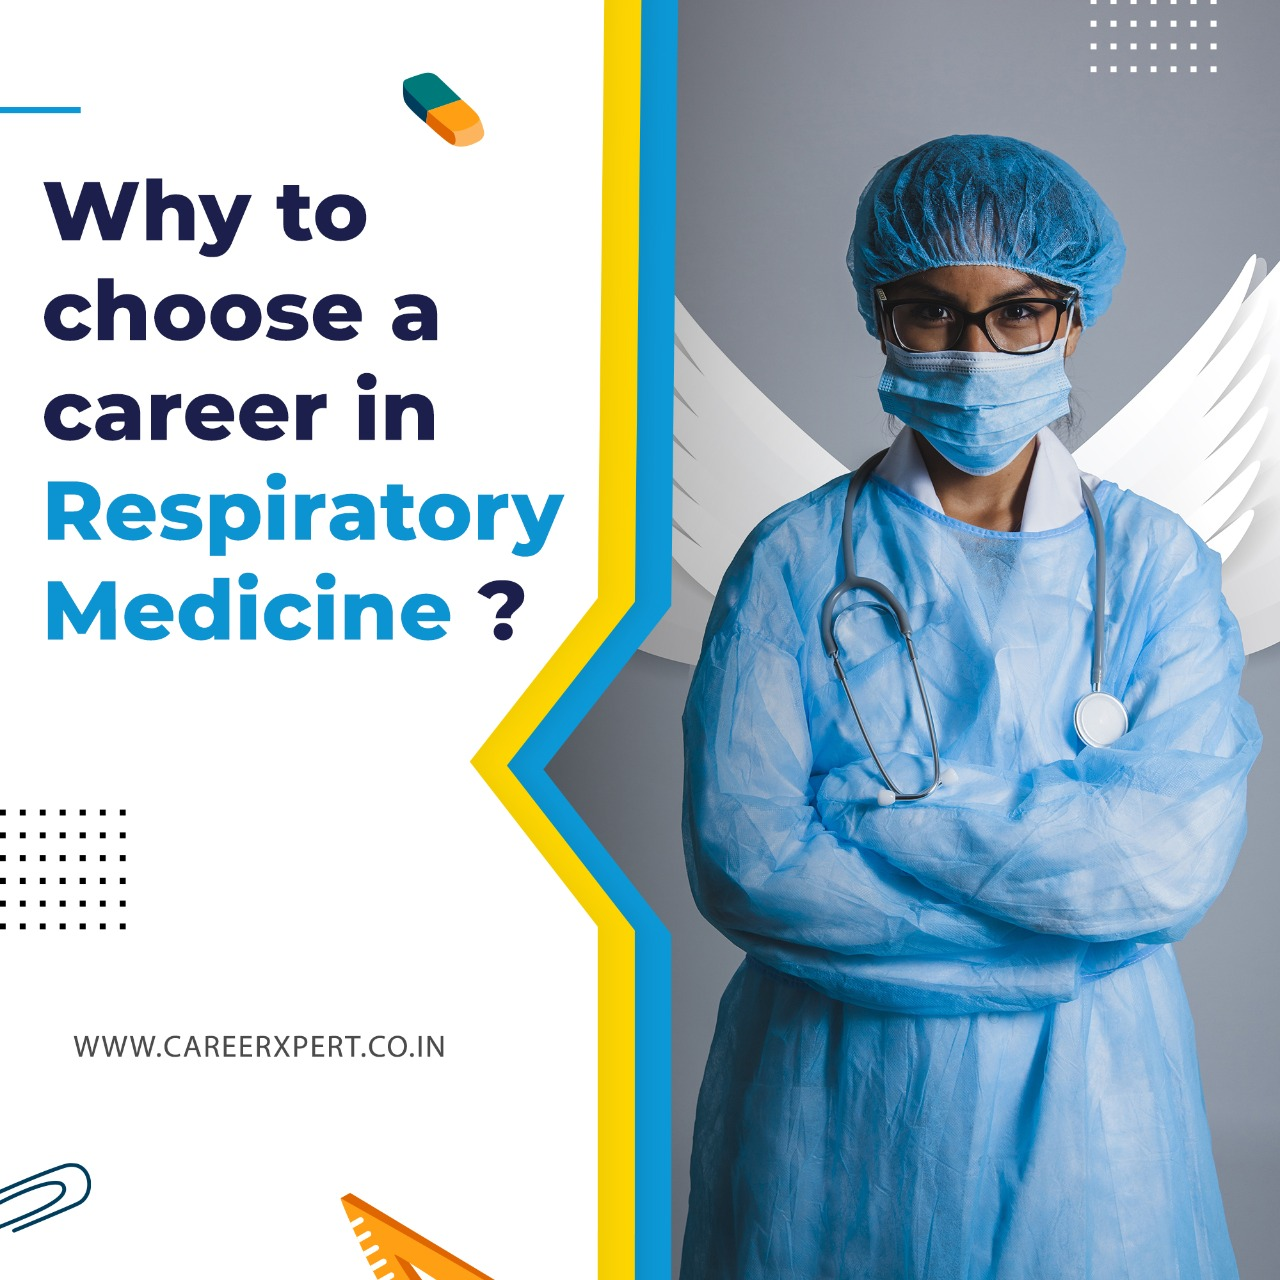 Why to choose a career in Respiratory Medicine